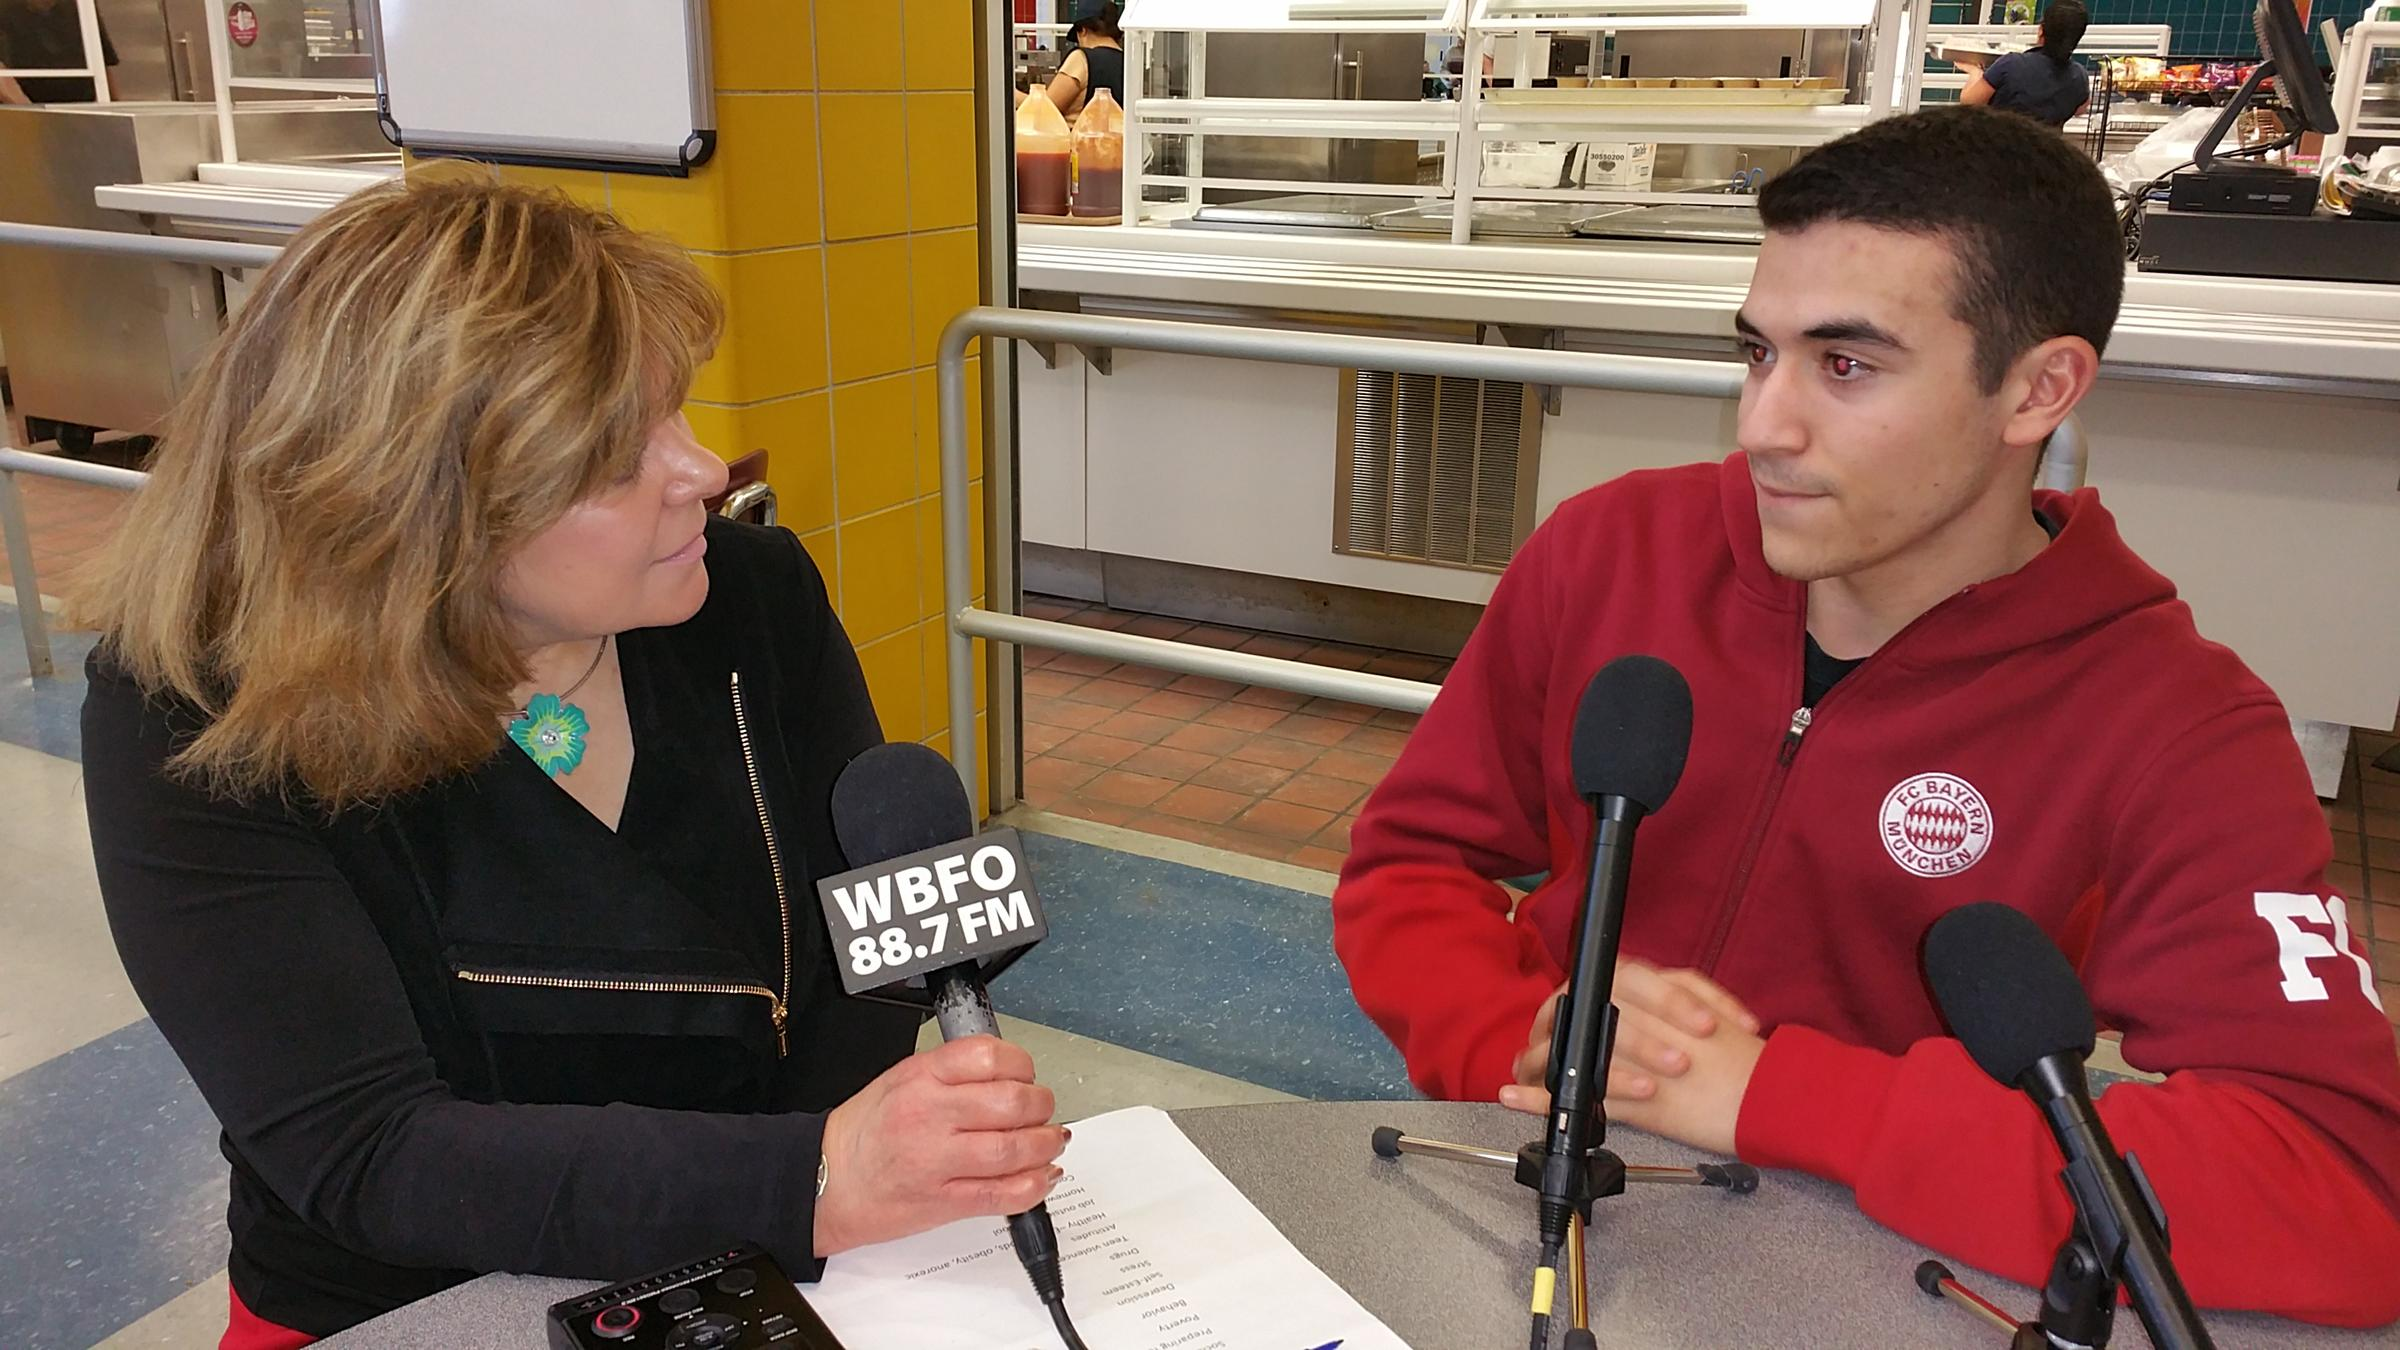 piece cafeteria chats teen violence bullying time lt src news wbfo org sites wbfo files styles default public 201703 20170201 121245 jpg alt niagara falls high school students join our